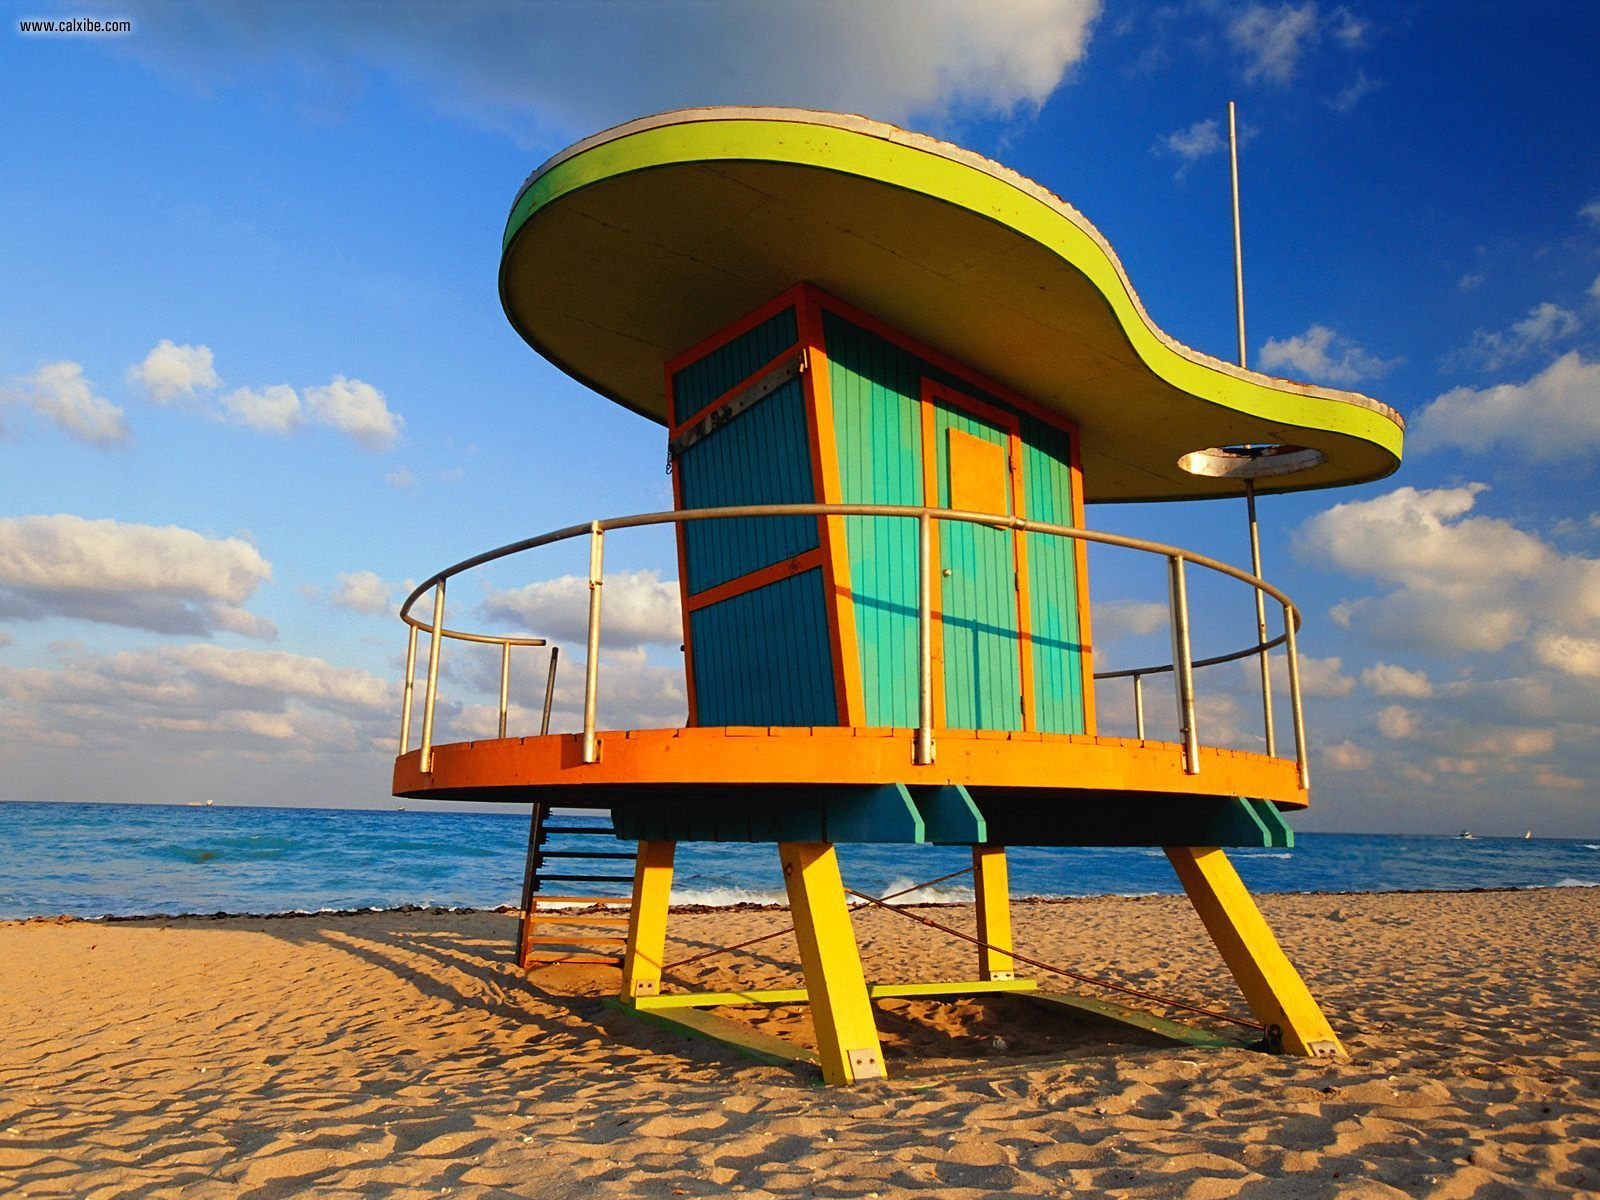 south beach miami wallpapers on the desktop or other device 1600x1200